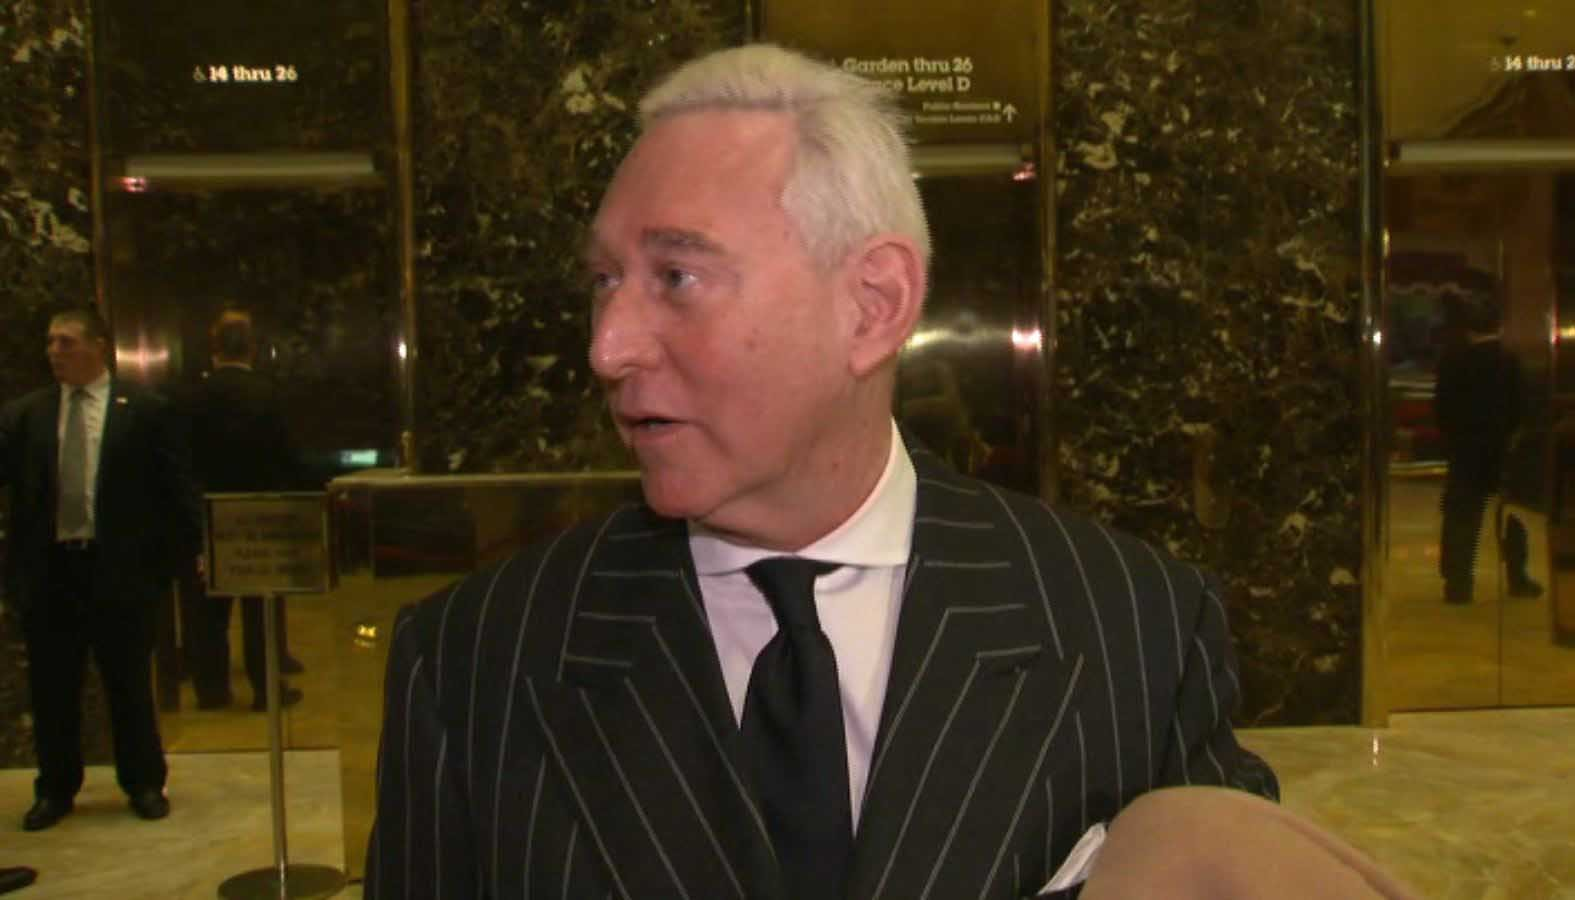 Special counsel Robert Mueller has issued a subpoena to the social media adviser to Roger Stone, a longtime associate of President Donald Trump. (Source: CNN/Pool)